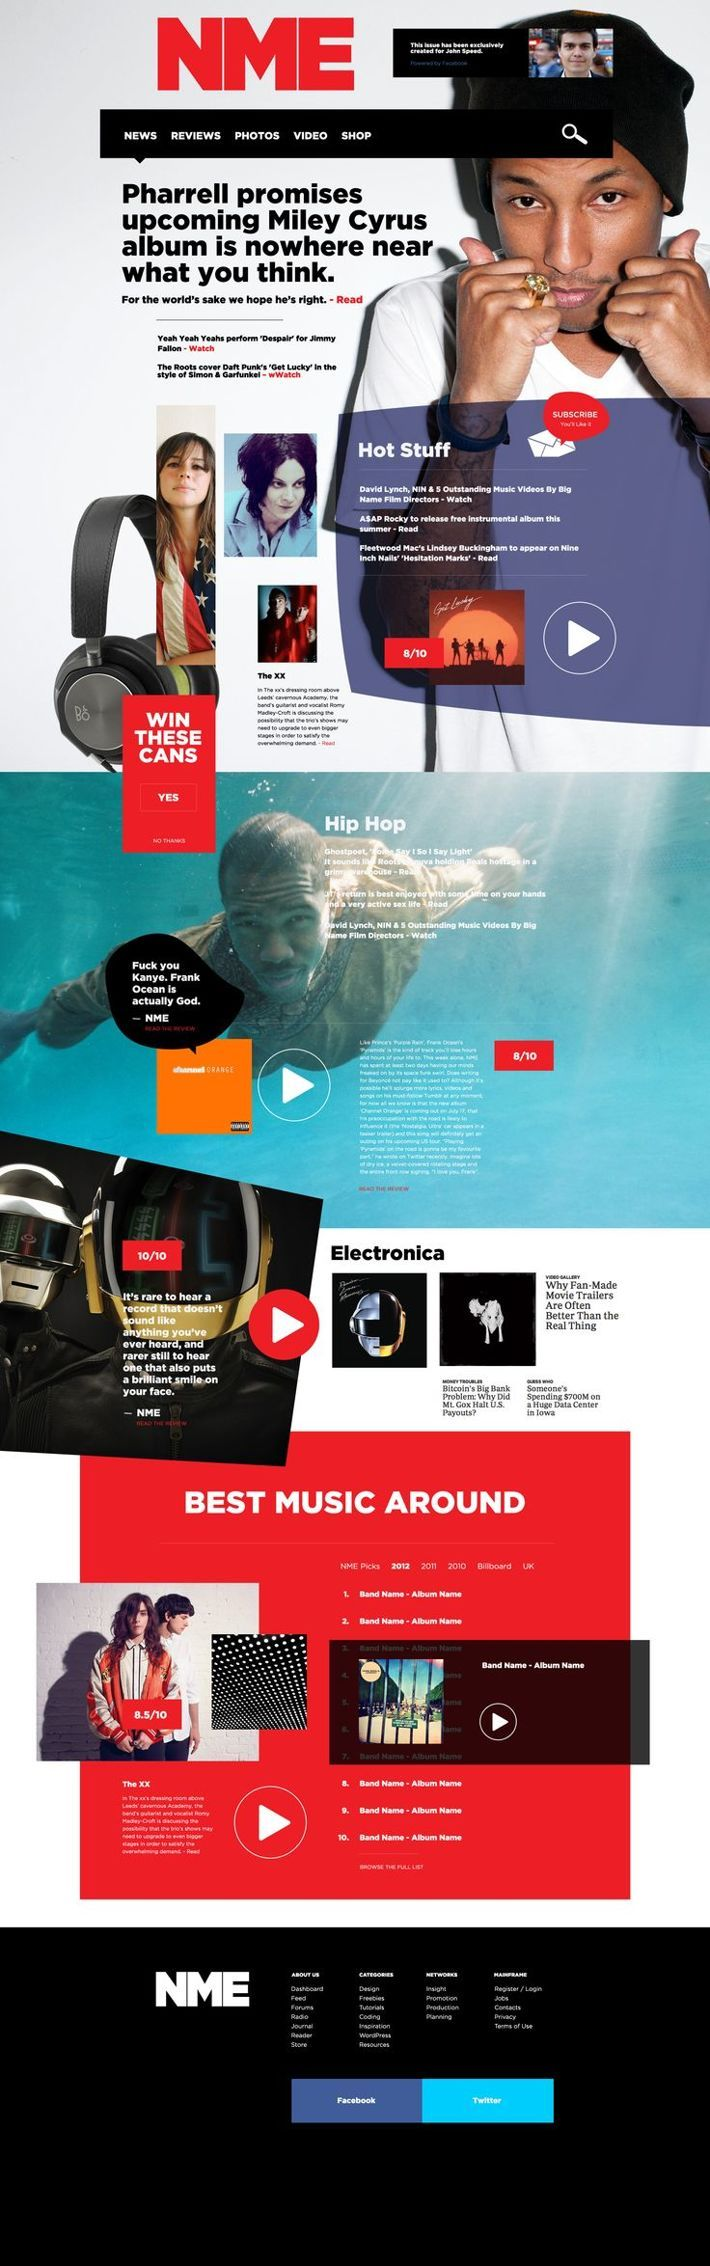 NME Music News Website Redesign Concept